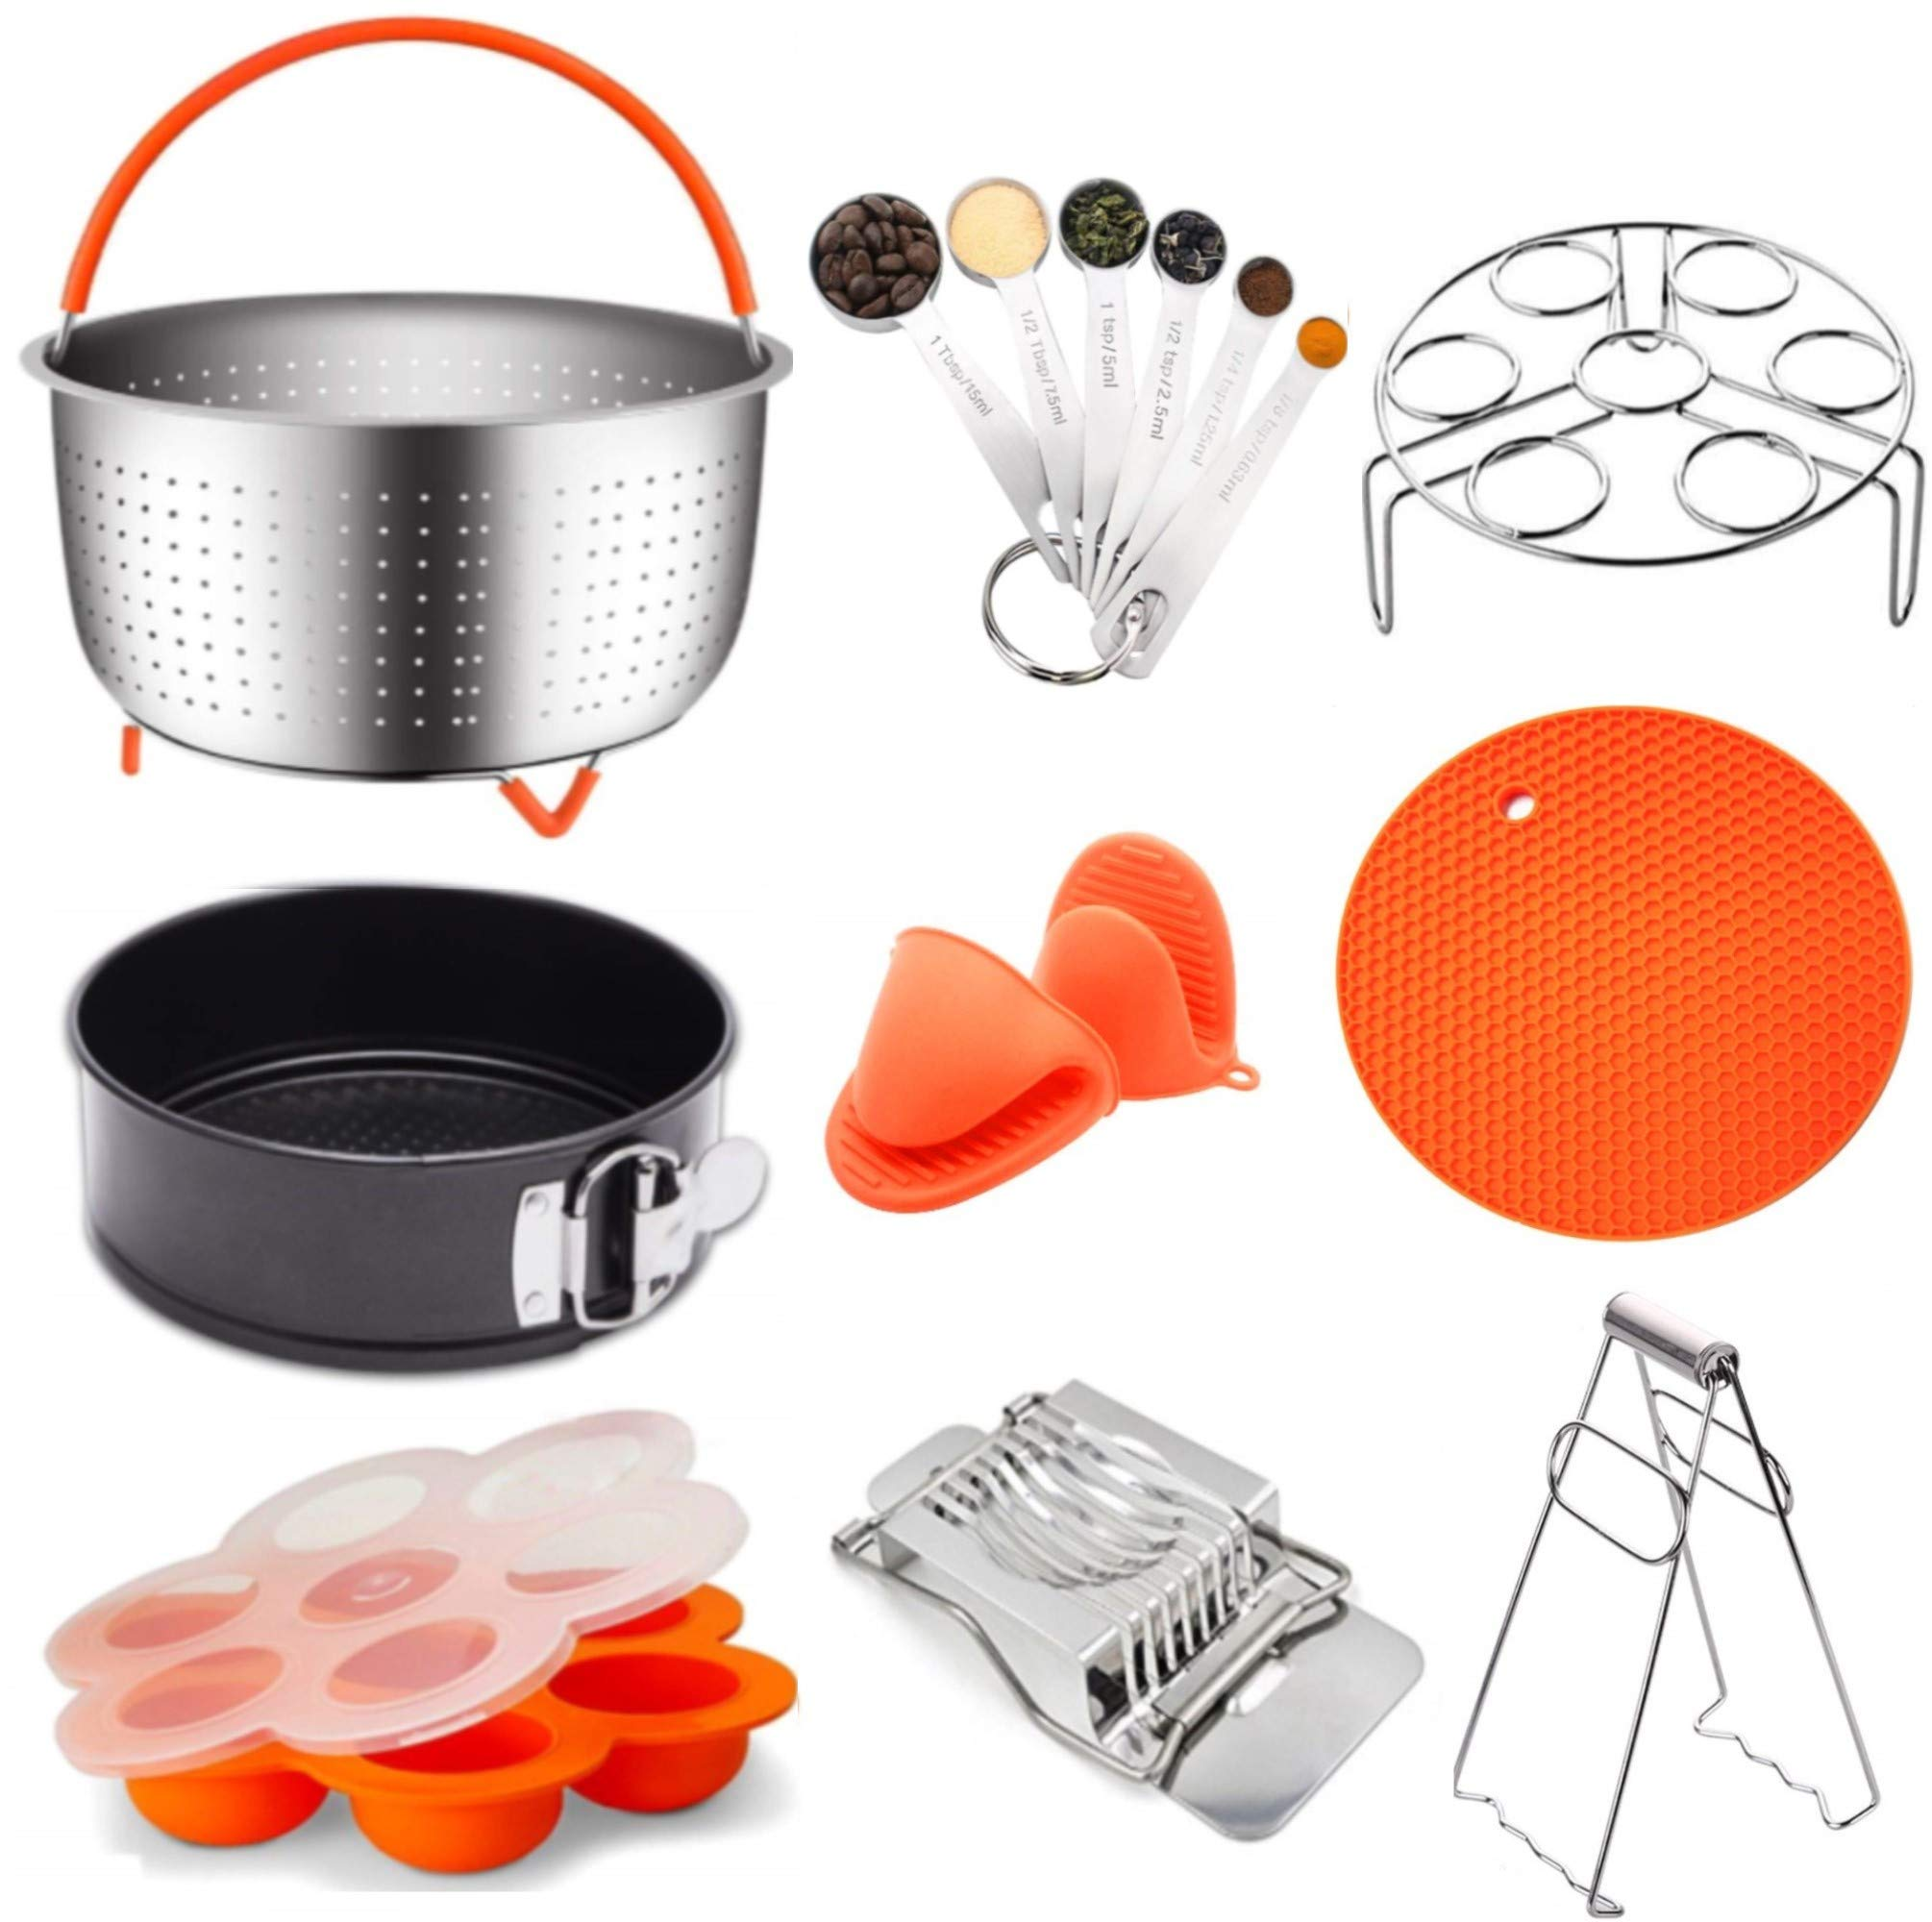 15-Piece Pressure Cooker Accessories Set | Complete Kit For Instant Pot And Other pressure cookers | Steamer Basket, Springform Pan, Egg Bite Mold, Egg Rack/Trivet For InstaPot Insta Pot